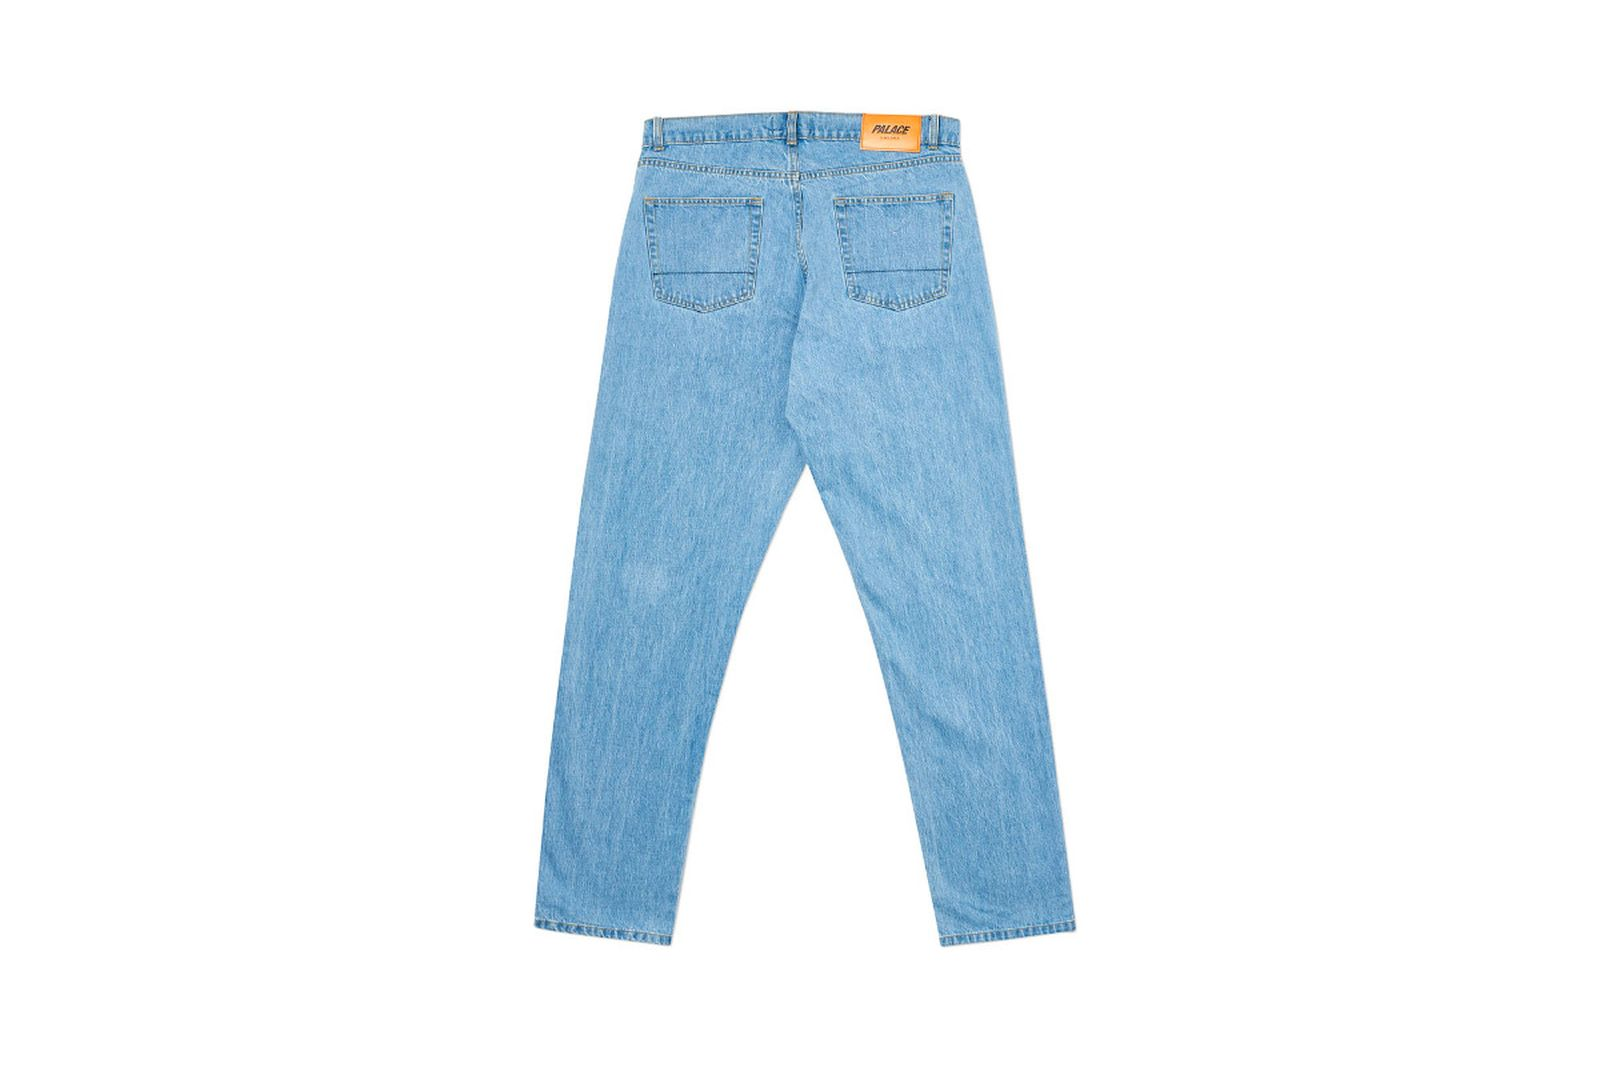 Palace 2019 Autumn Jeans Stonewash back fw19